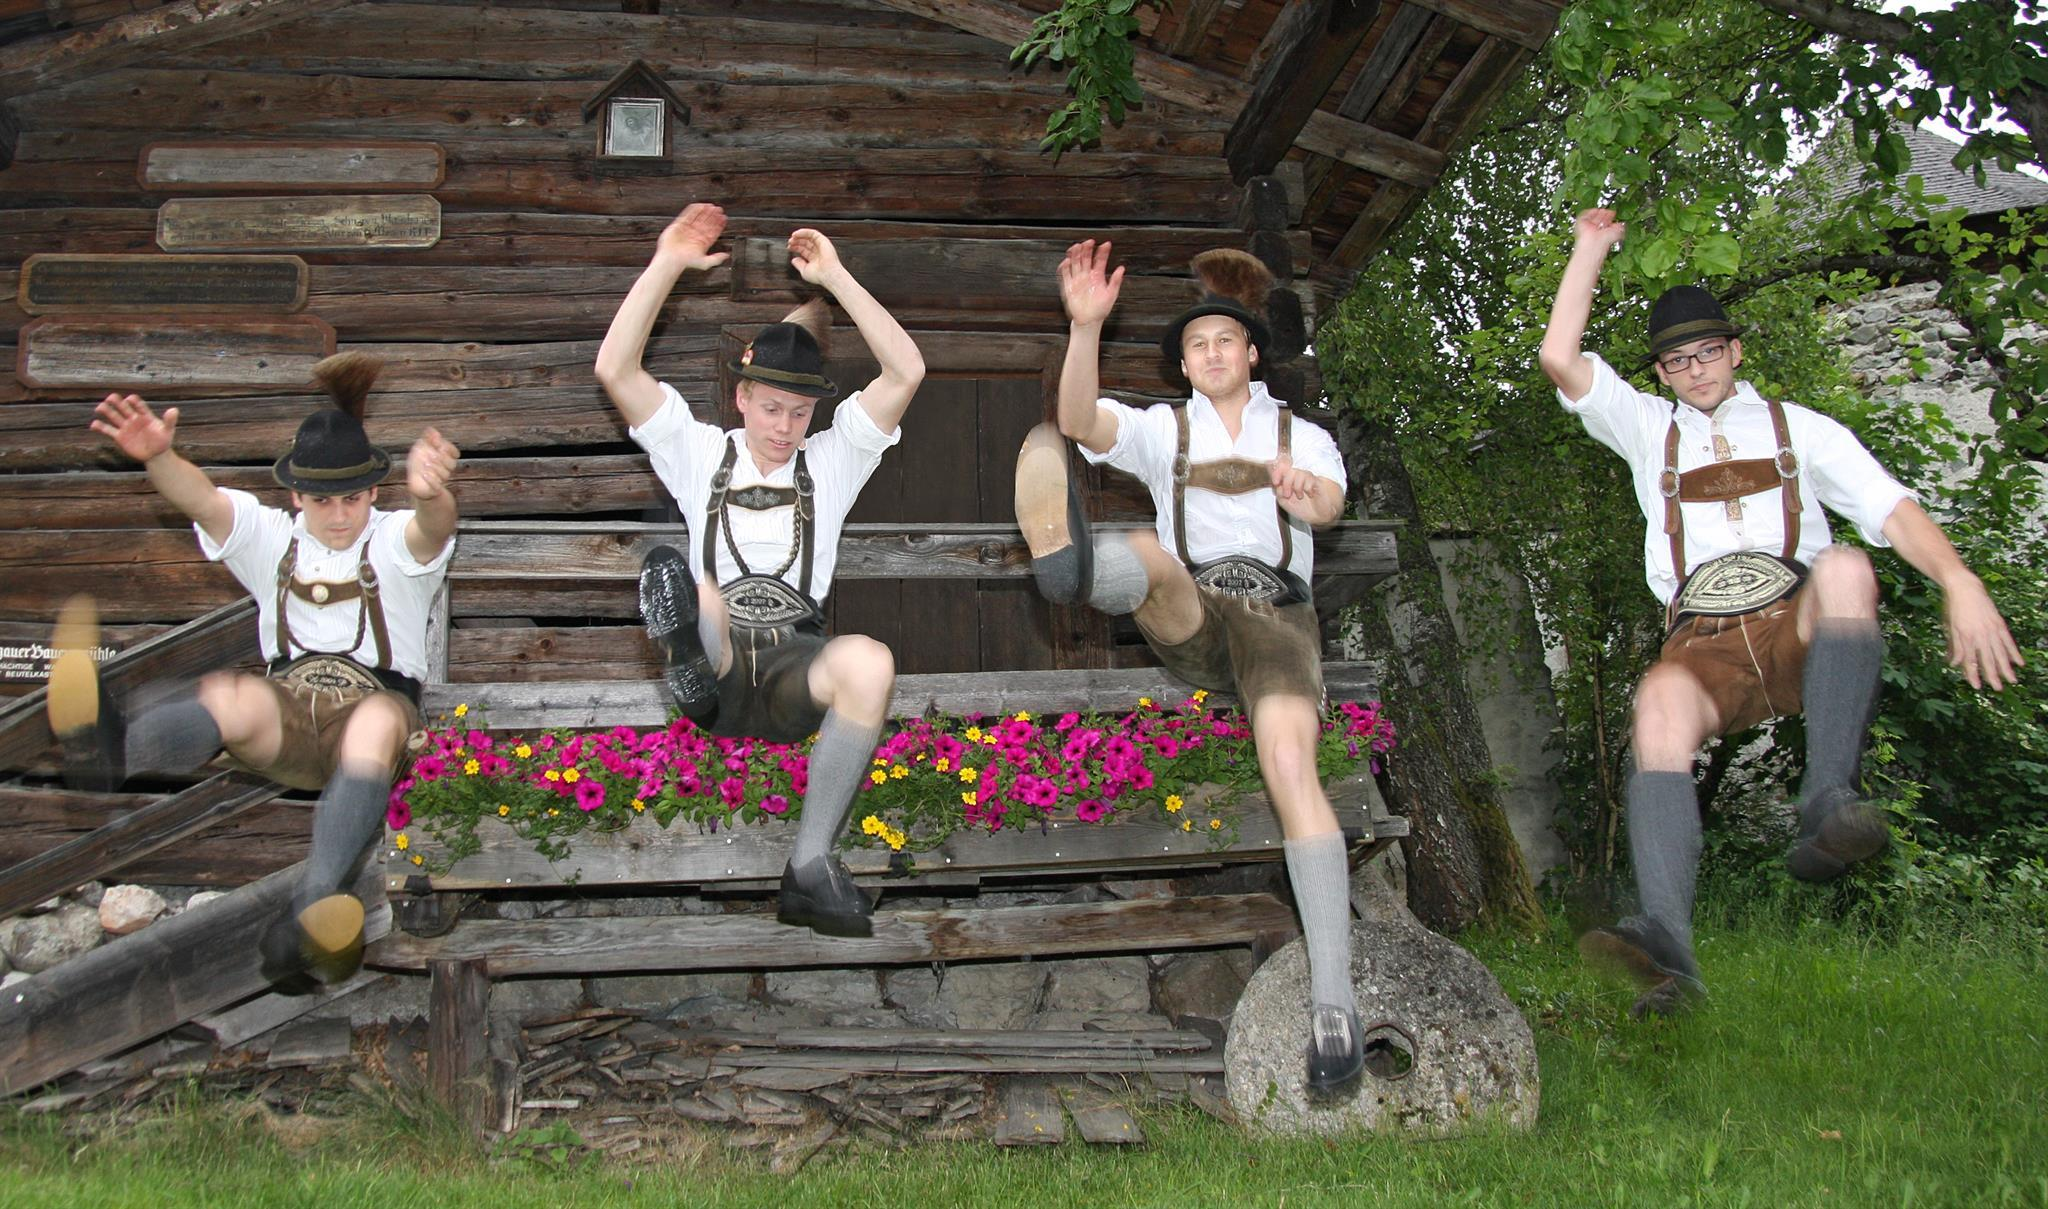 Traditional evening at the castle Kaprun - 14/07/2020, from 8:00 PM